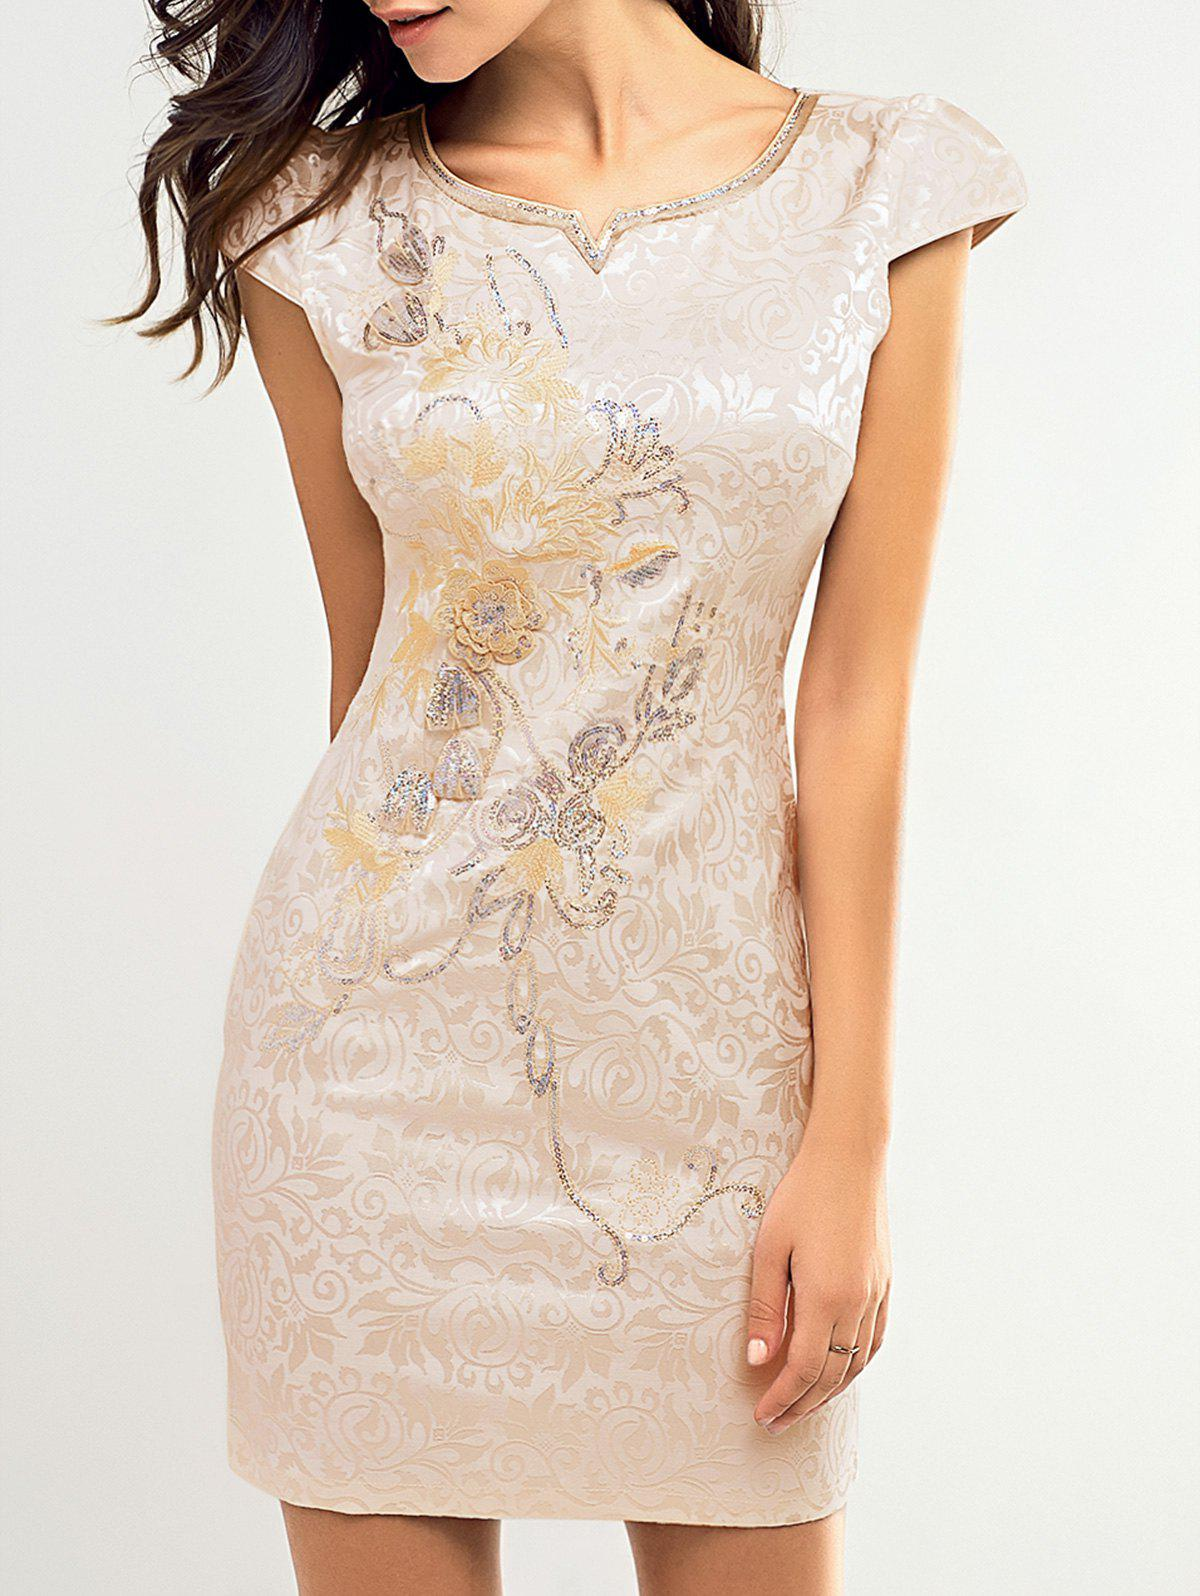 Vintage Floral Embroidered Sequined Dress For Women